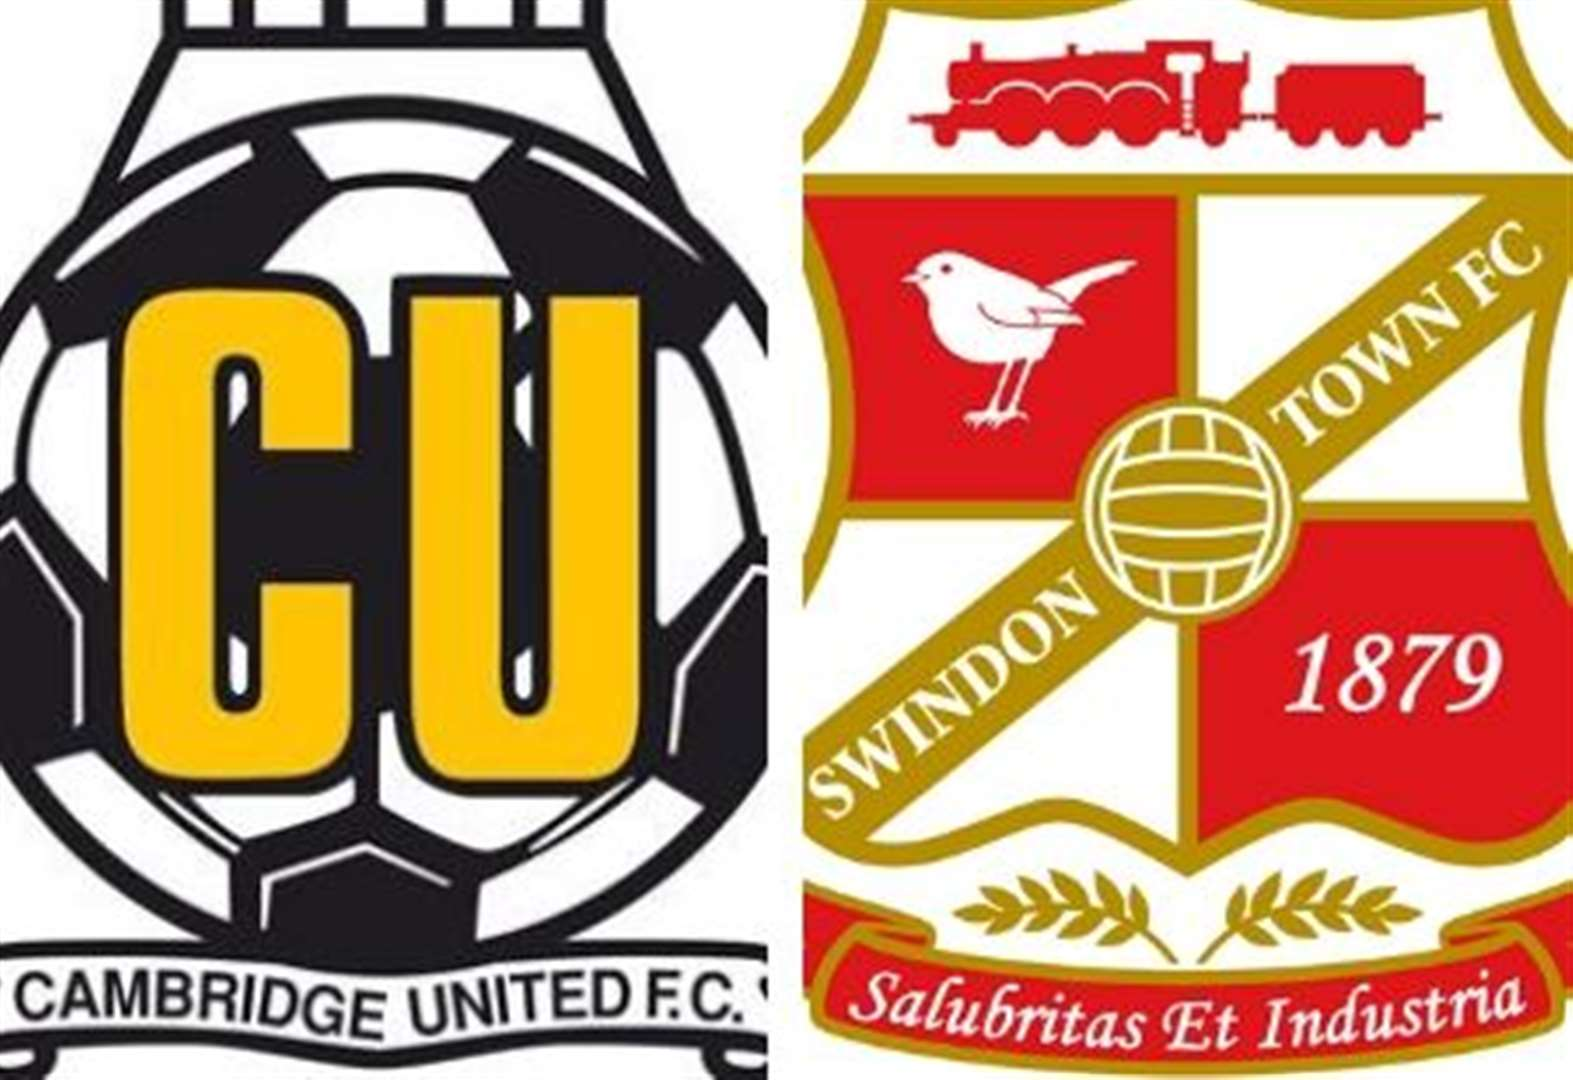 Cambridge United aim to bring an end to Swindon Town unbeaten spell in Sky Bet League Two